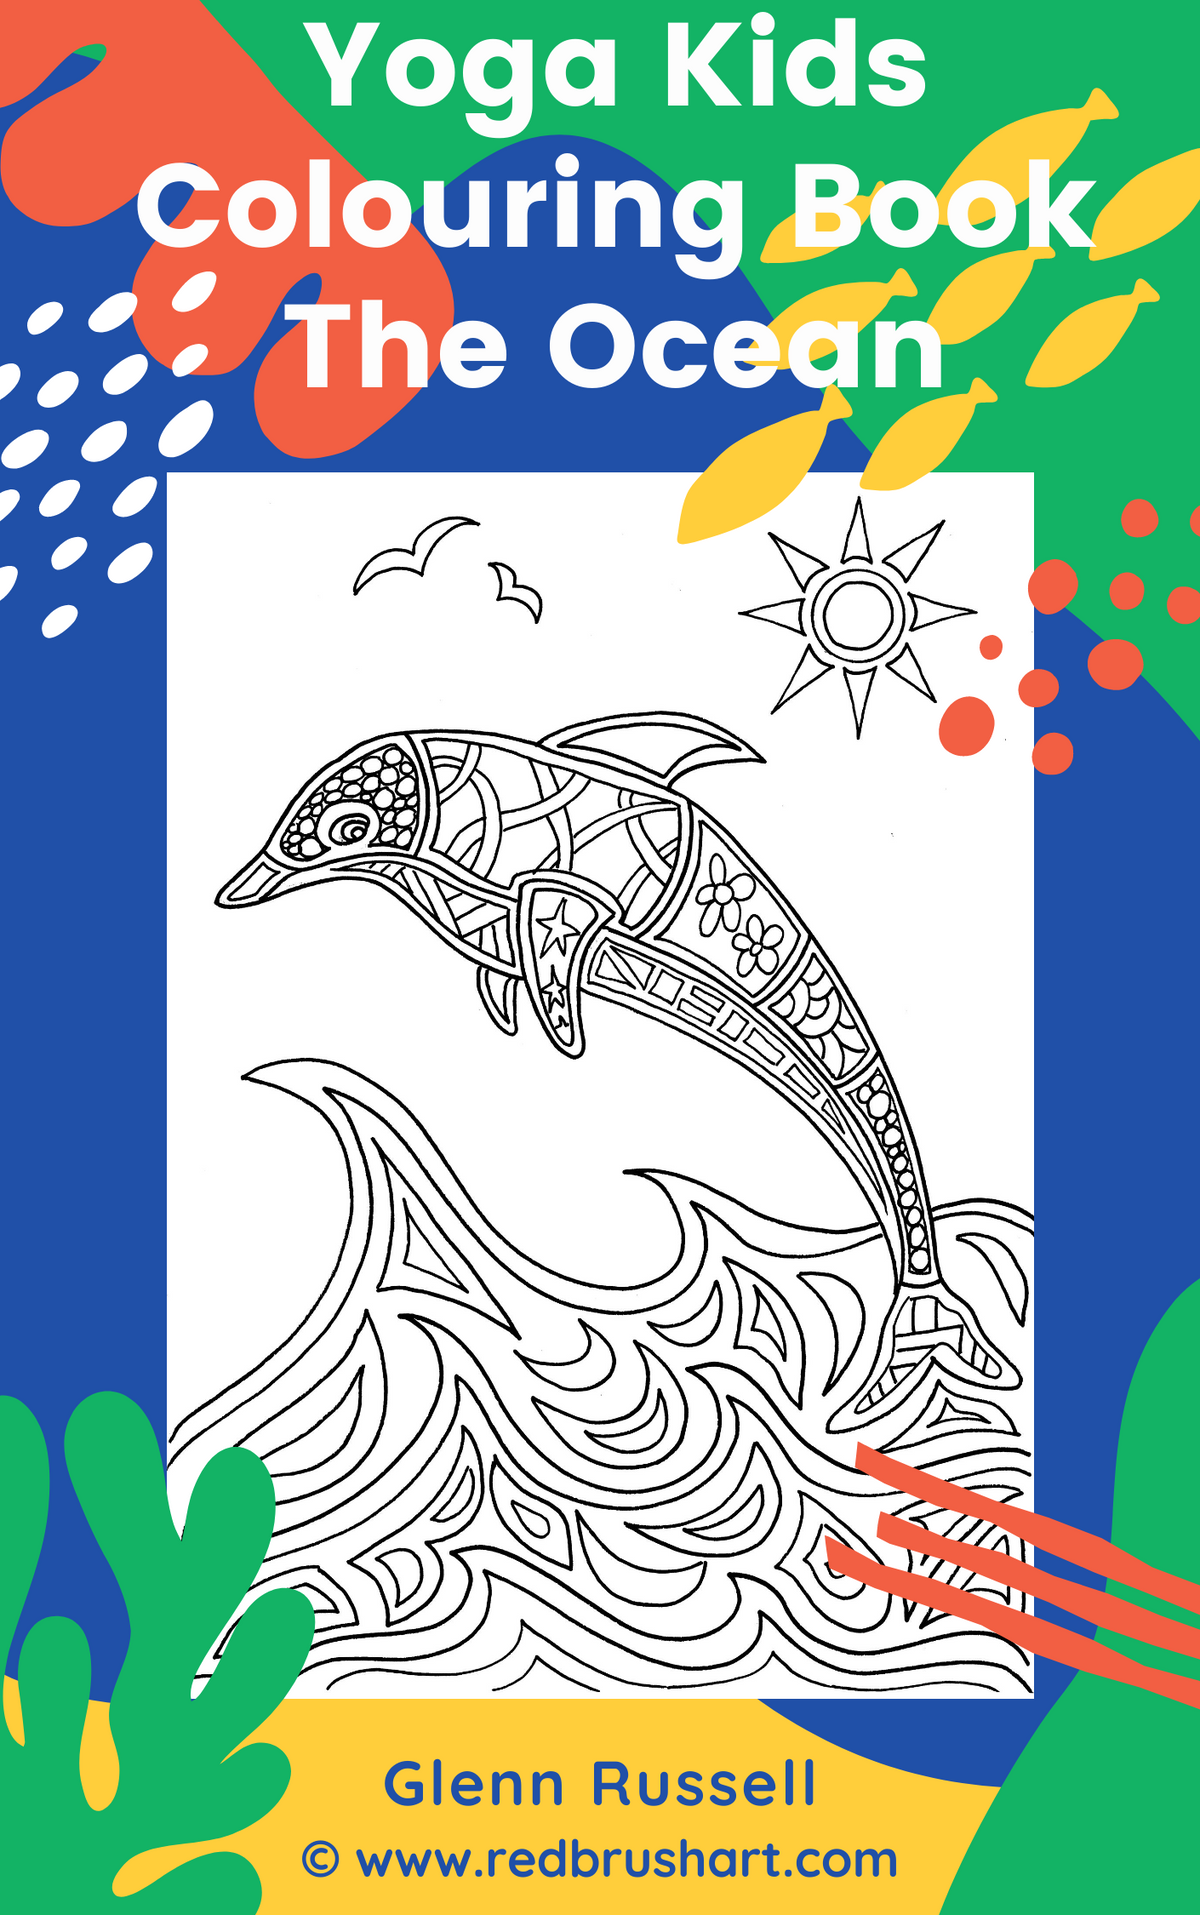 Yoga Kids Colouring Book The Ocean